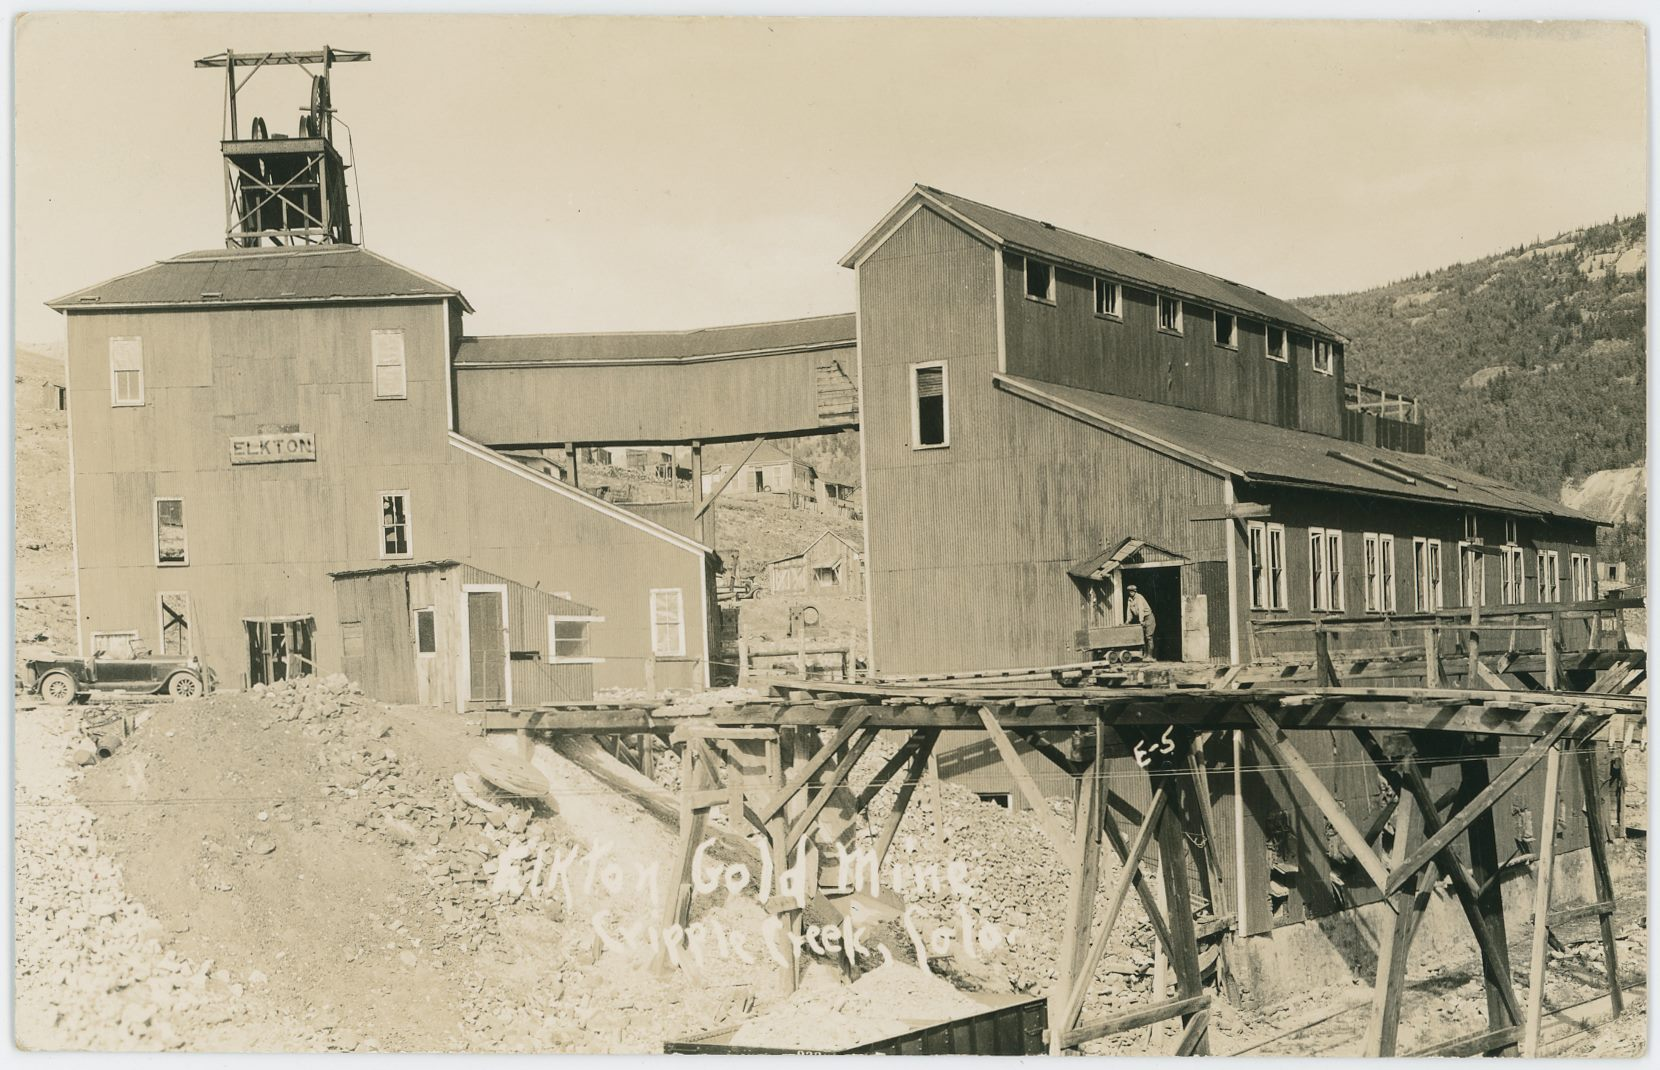 This view at the northern side of the Elkton Mine complex is a quite nice one, but it has faded a little and appears washed out. There is an automobile parked at the old Shaft House where only the north portion of it still stands, the Head-Frame is in the Open air so to speak, but they kept the landing area and covered trestle over to the Ore-House Structure. A man is standing with a small hand ore-car at the door out of the orehouse on the trestlework to the dump areas. There is also a single Midland Terminal Gondola parked almost under one of those dump track trestles.    Town of Elkton is partly seen behind the mine with a couple of houses visible, and along the right-hand side, about halfway up from bottom, there appears to be an Adit/Tunnel Portal into the hillside in the distance which I think would be Battle Mountain in terms of name of the hill, while the Adit I do not know, but this might be part of the Eclipse-Carbonate Queen Mine operation.